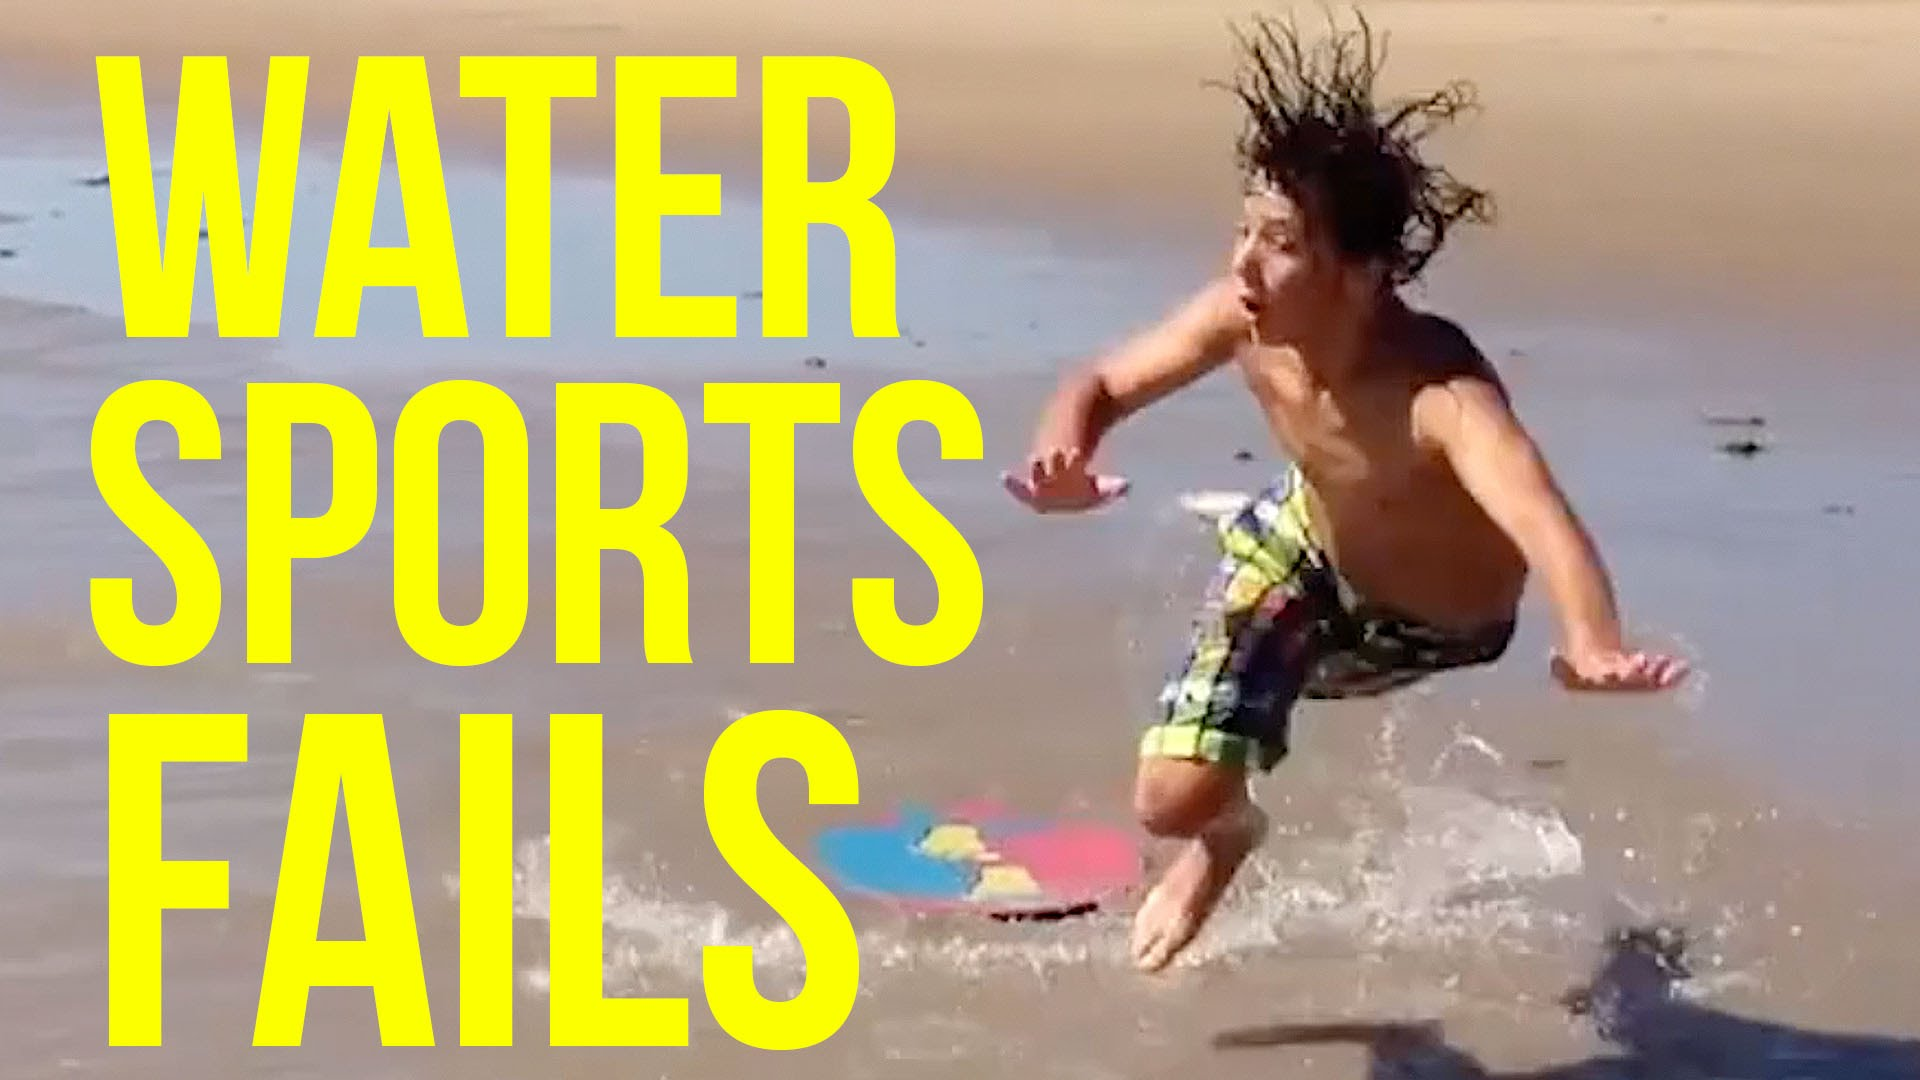 Ultimate Water Sports Fails Compilation || FailArmy